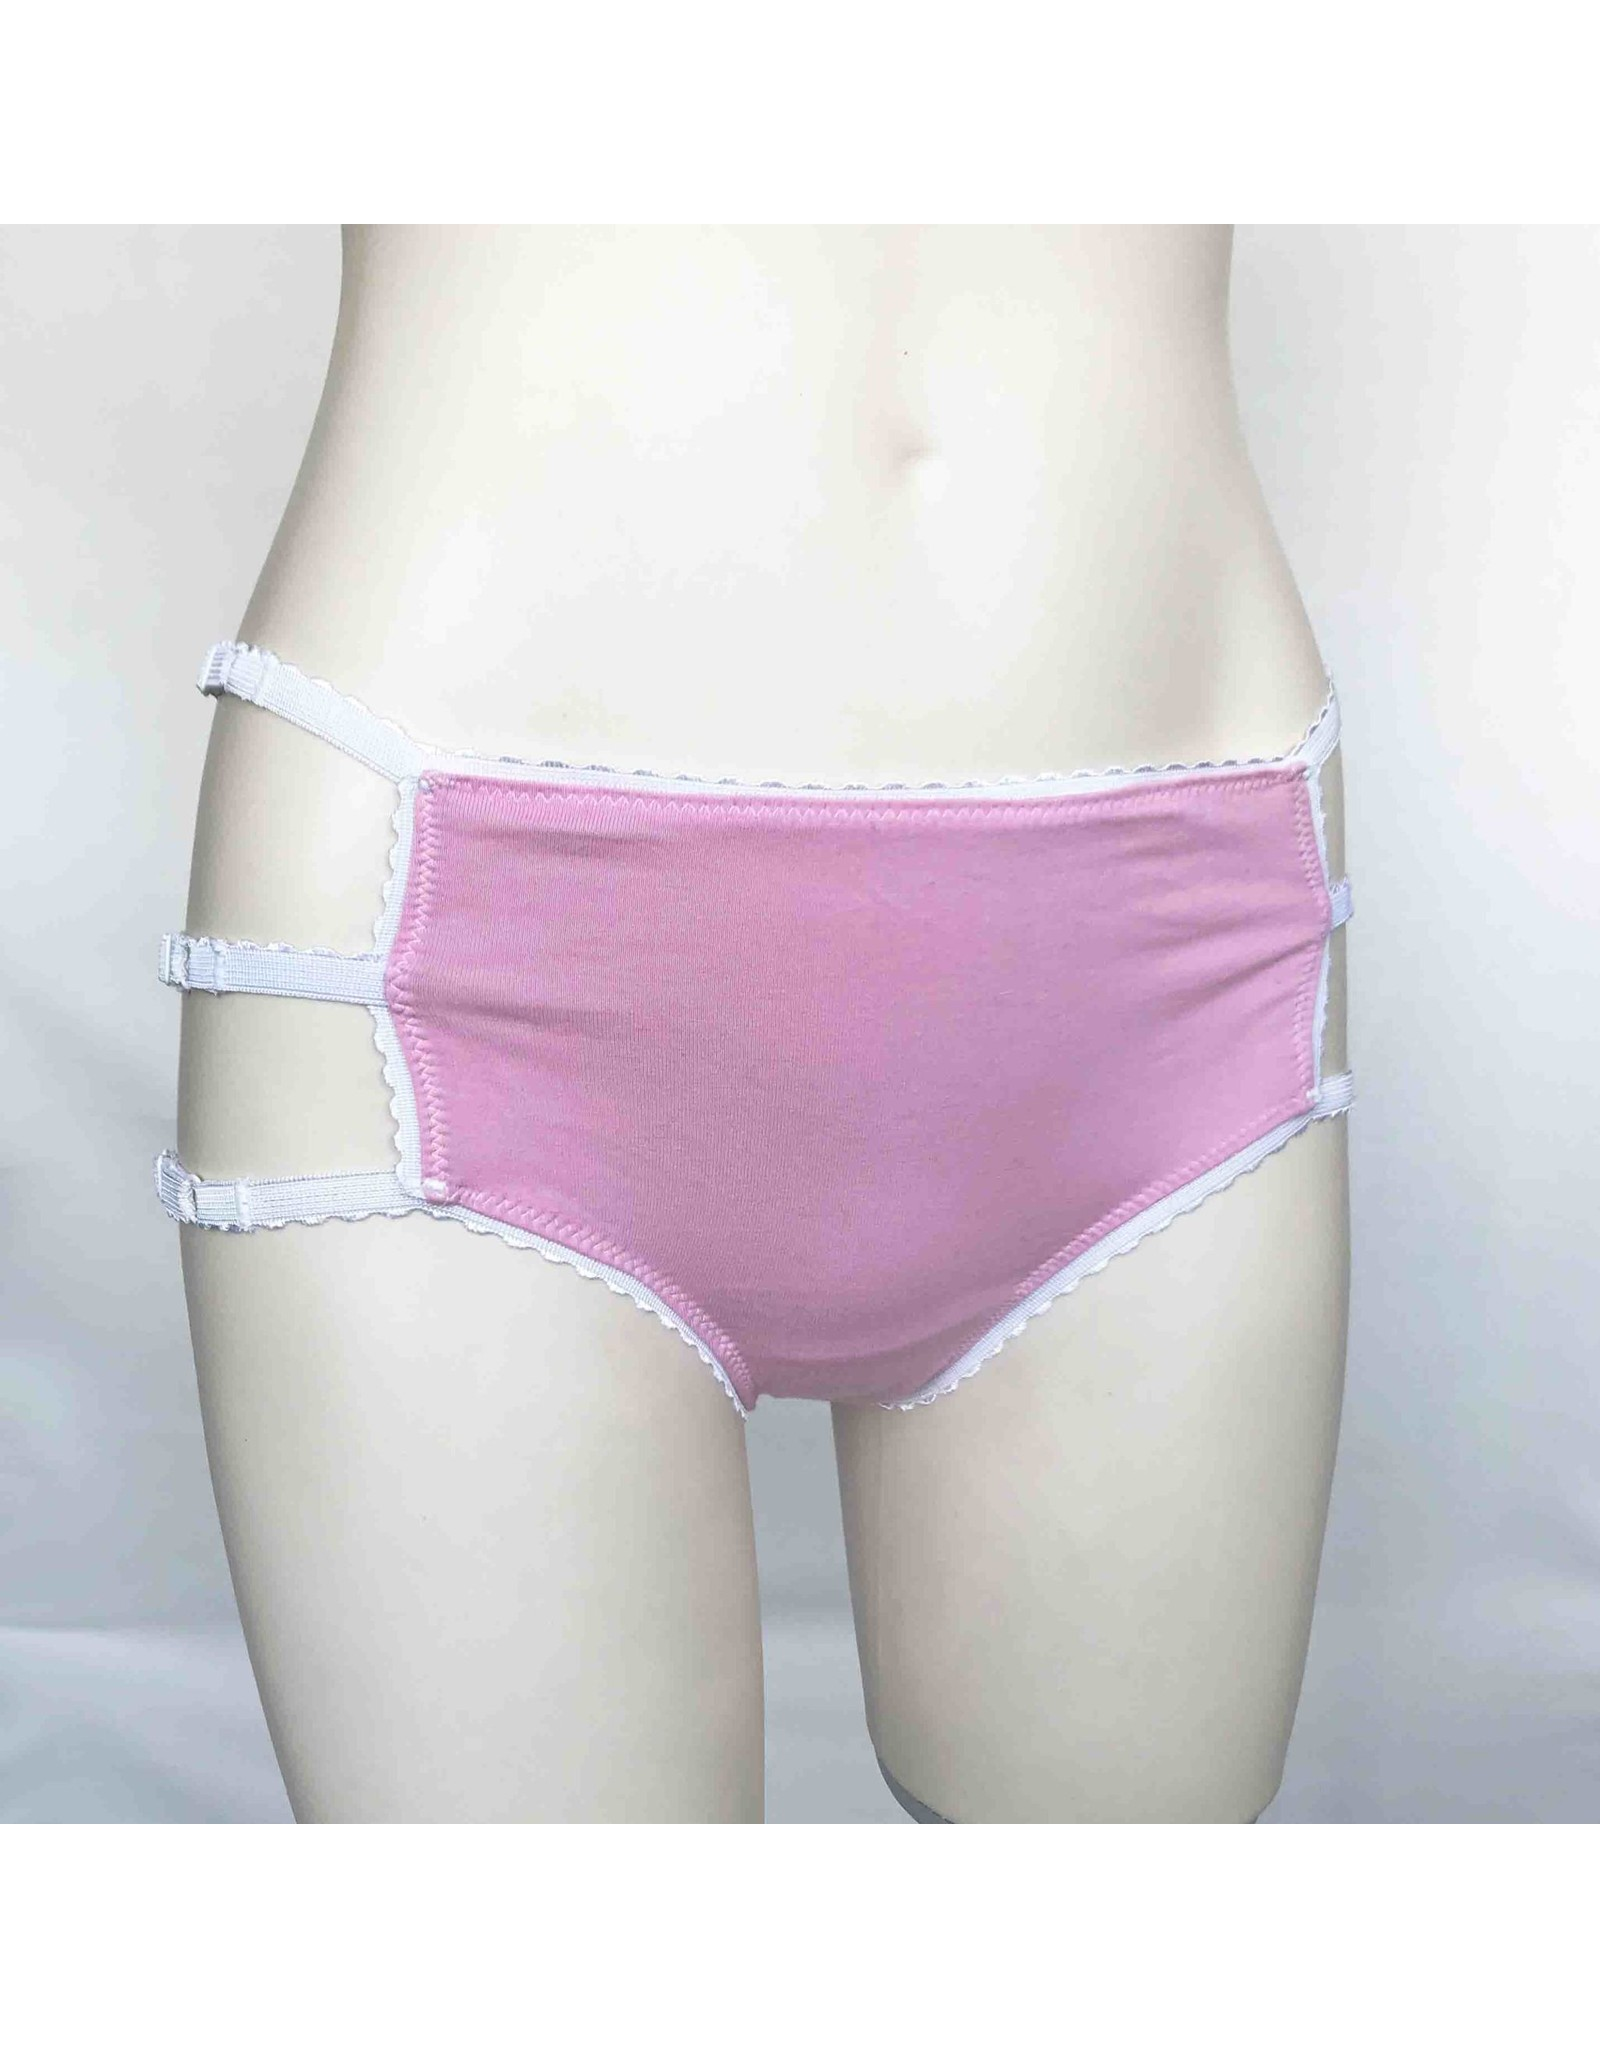 Devil May Wear Cage Panties. Bamboo blend. Adjustable size tabs. Mid Rise. Pink/White